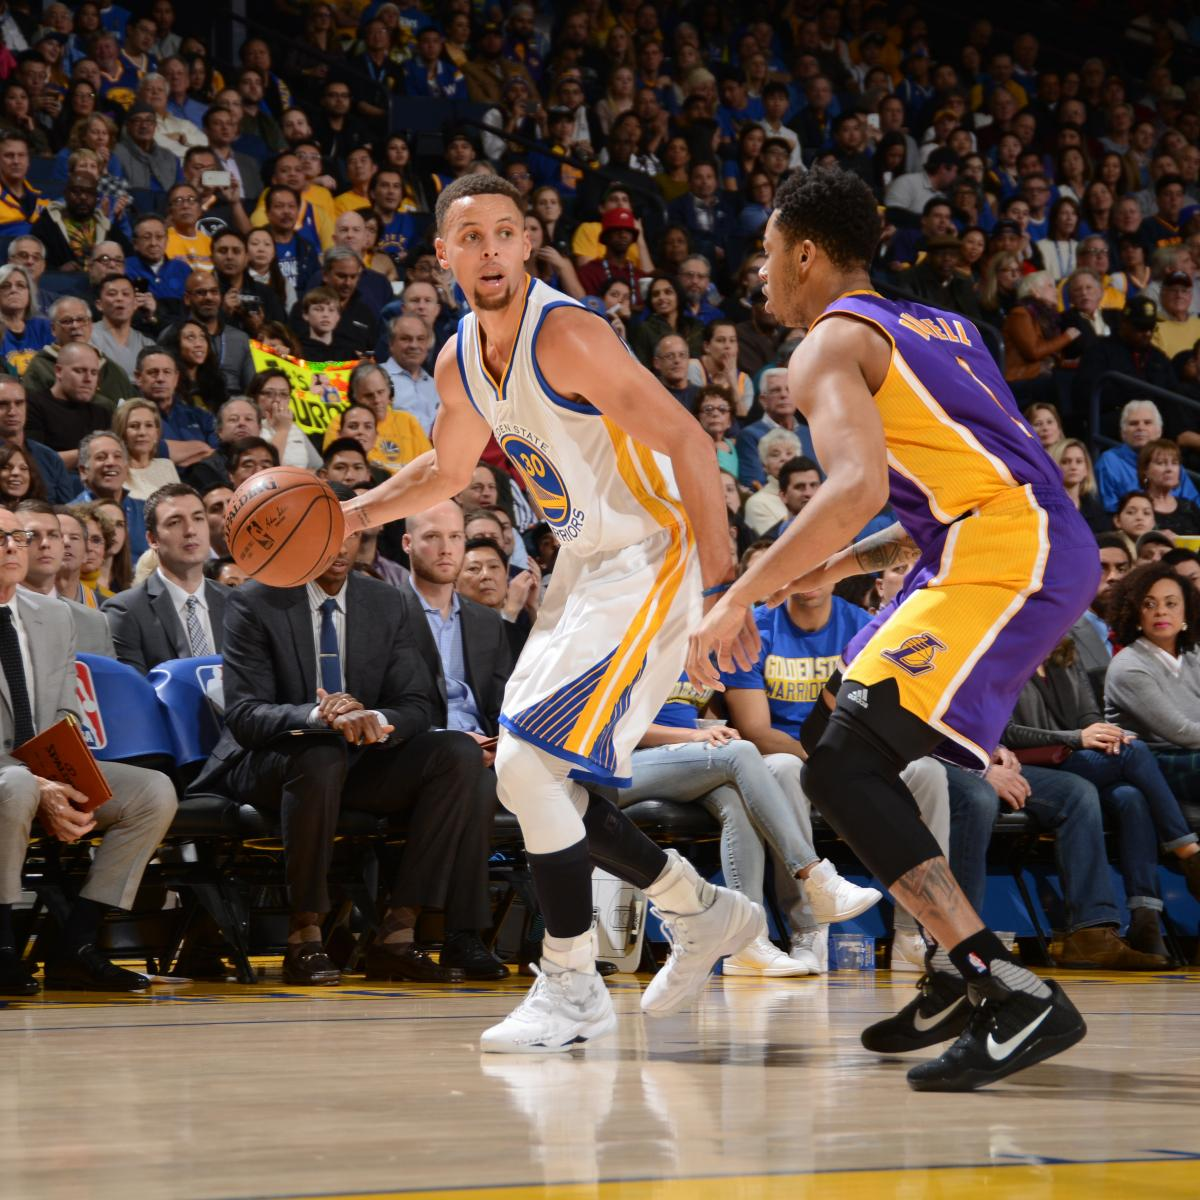 Denver Nuggets Vs Golden State Warriors Game 6 Score: Lakers Vs. Warriors: Score, Video Highlights And Recap